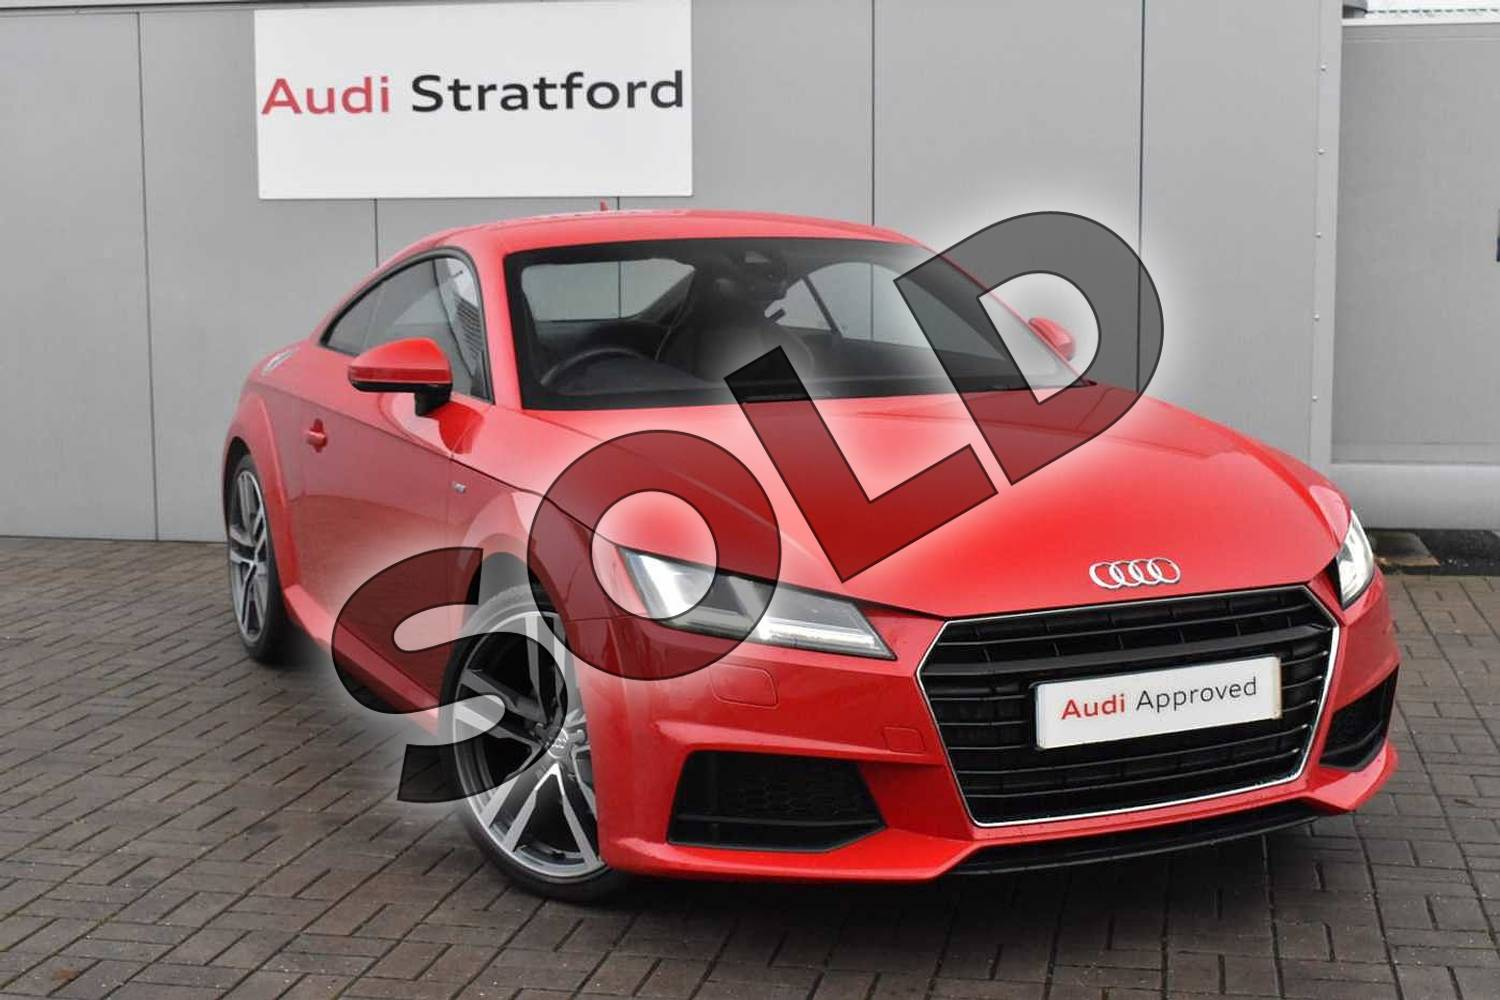 2017 Audi TT Coupe 2.0T FSI S Line 2dr in Tango Red Metallic at Stratford Audi